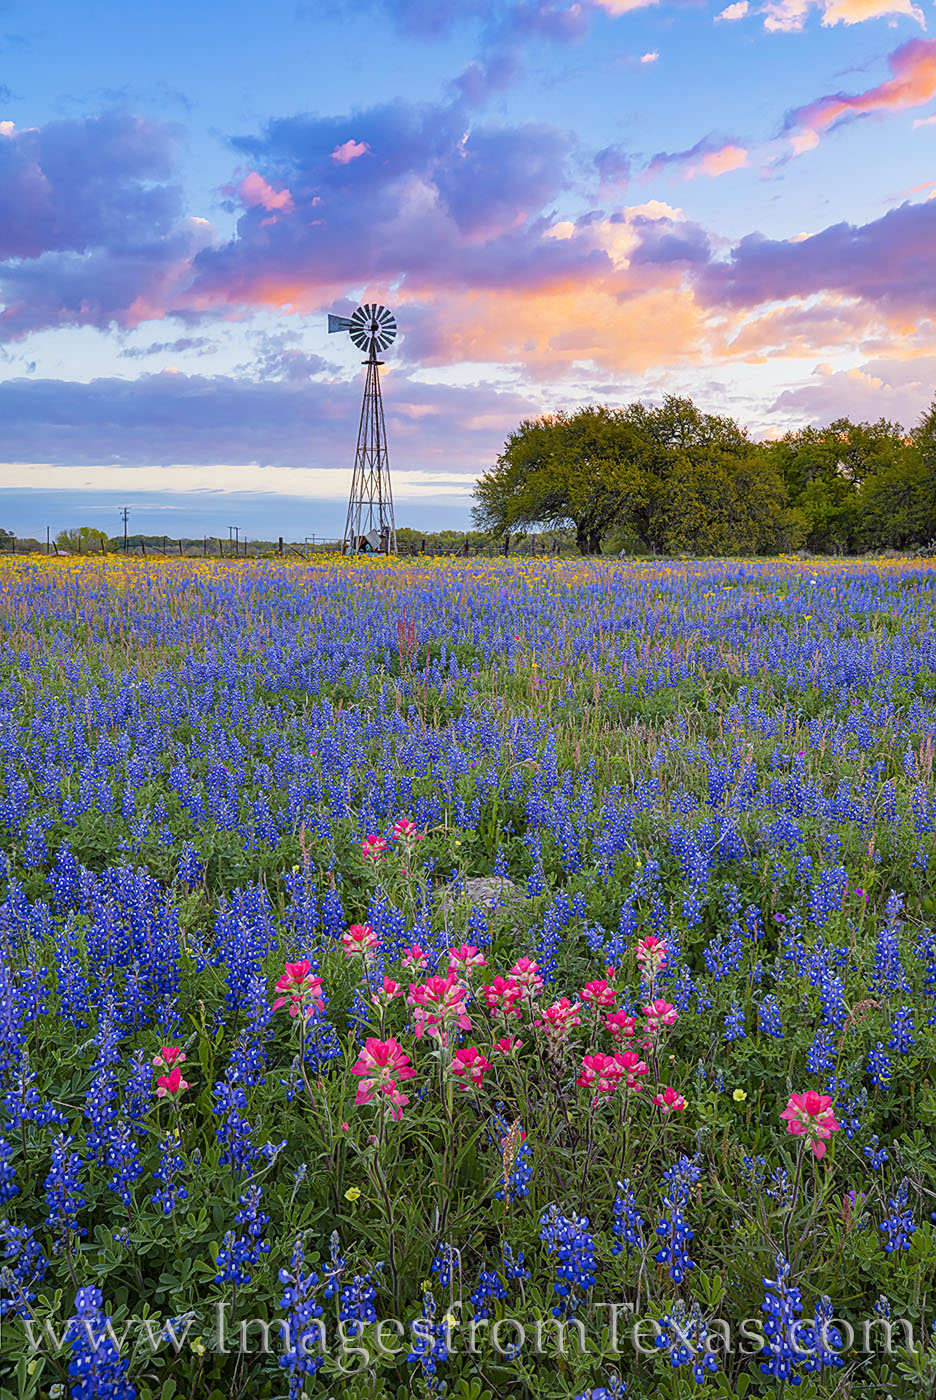 bluebonnets, paintbrush, red, blue, windmill, wildflowers, poteet, Atascosa county, groundsel, morning, peace, photo